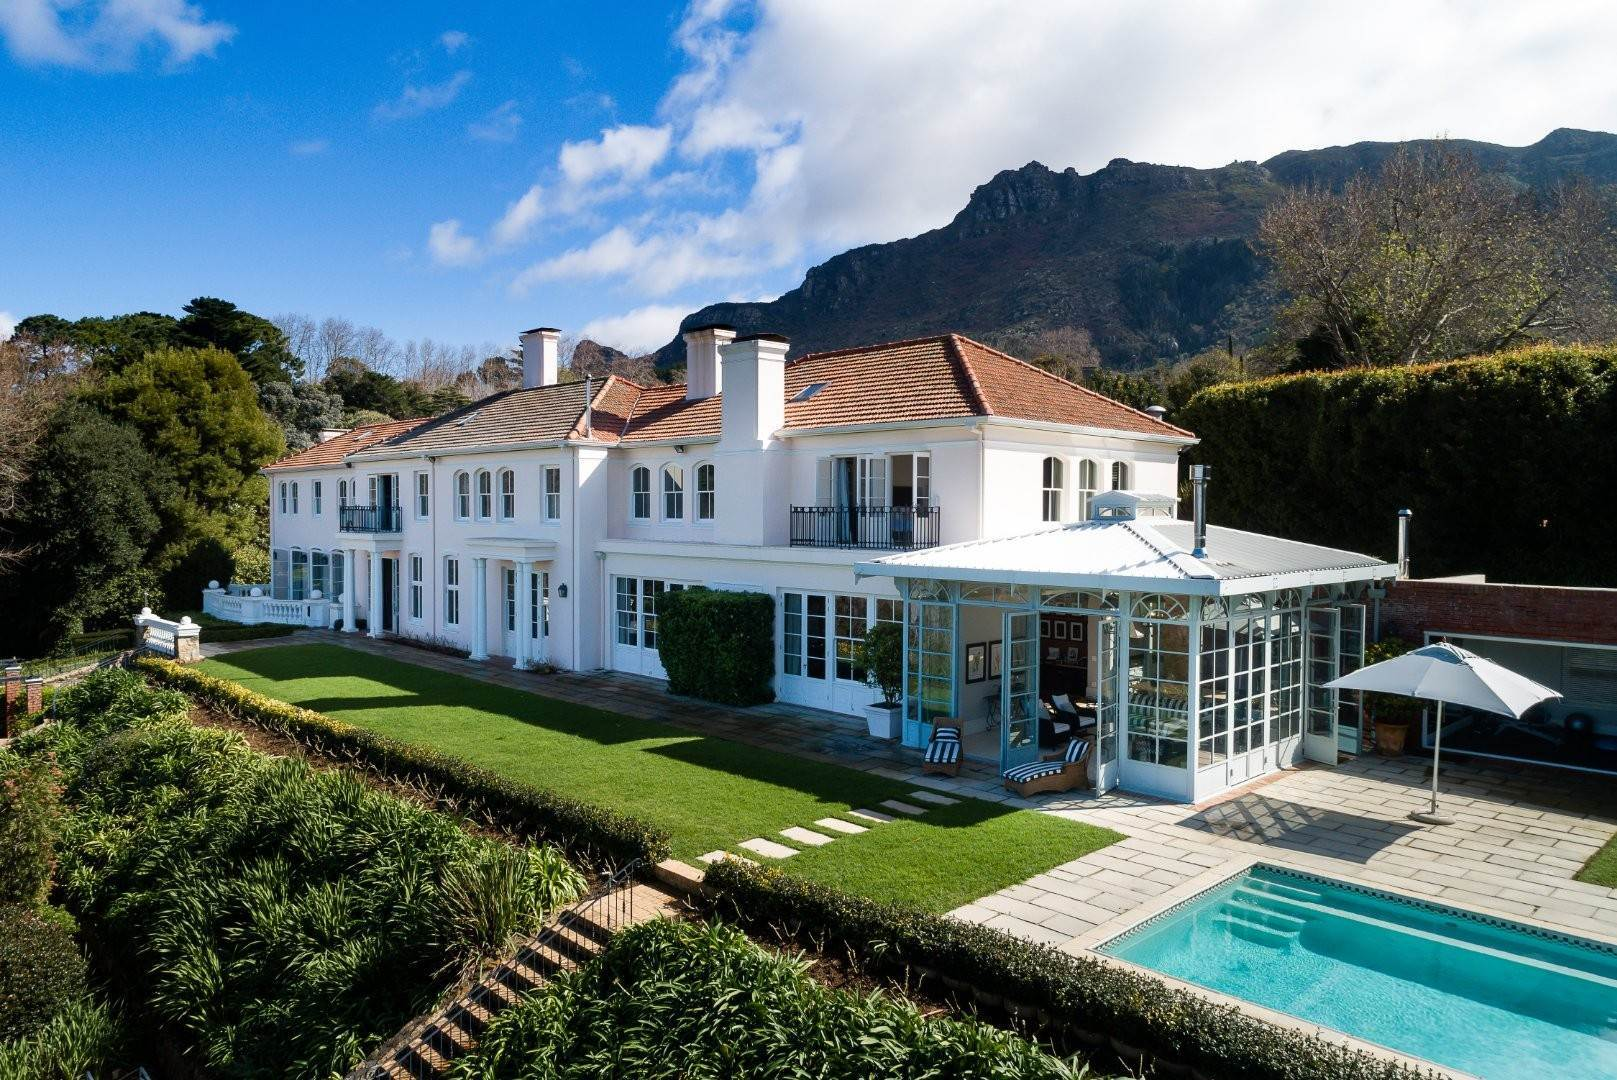 4. Estate for Sale at A MAJESTIC RESIDENCE WITH UNDENIABLE GLOBAL APPEAL Constantia, South Africa